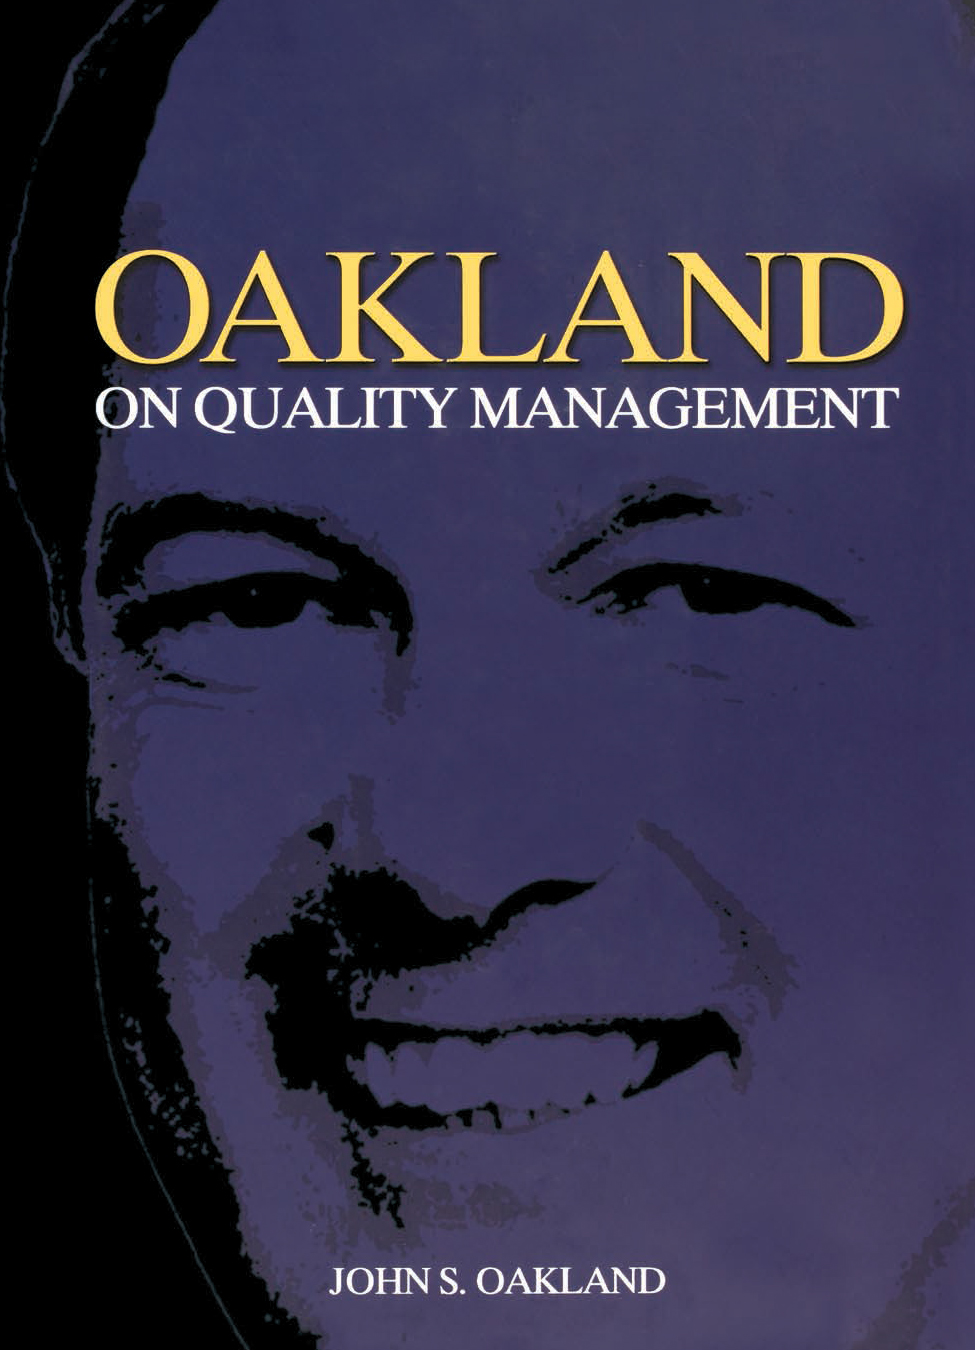 Download Ebook Oakland on Quality Management (3rd ed.) by John S Oakland Pdf